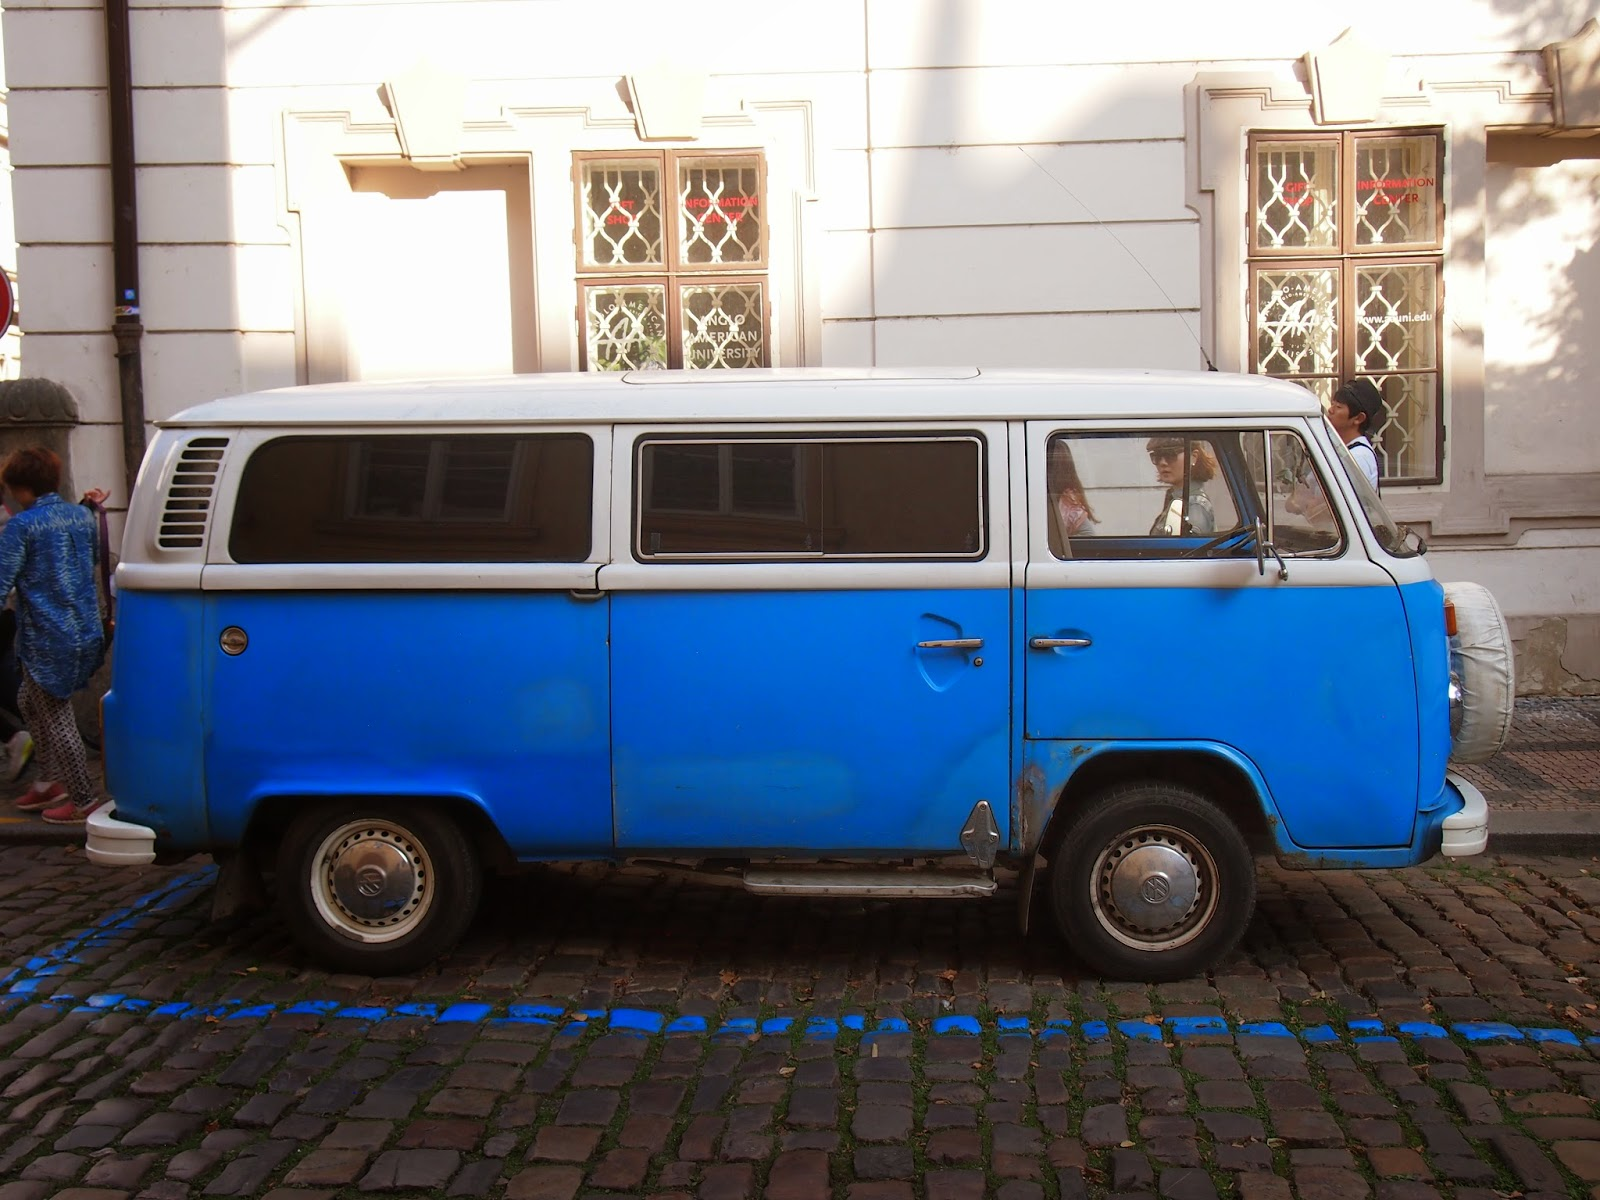 A blue VW bus spotted in Prague near the Lennon Wall